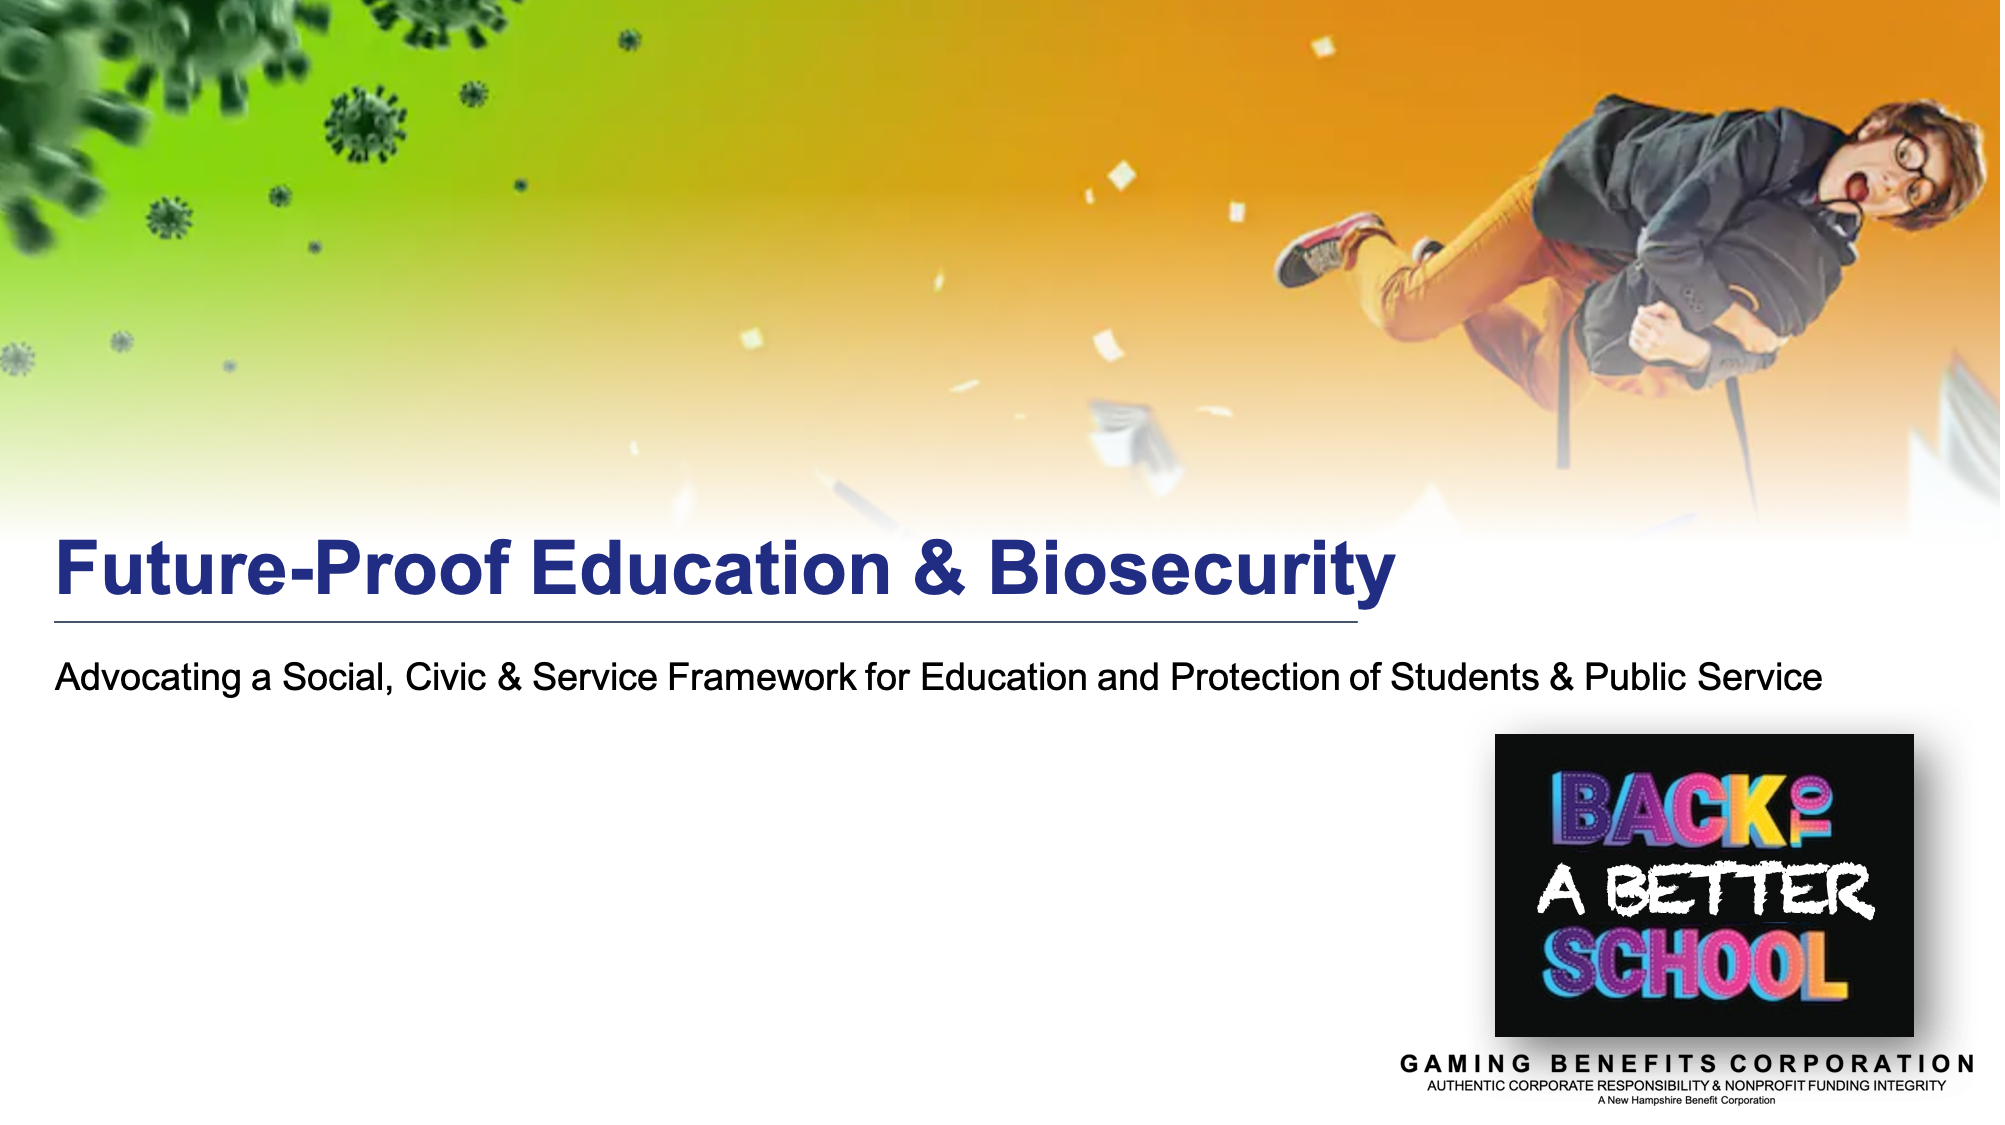 future-proof-education-and-biosecurity-1